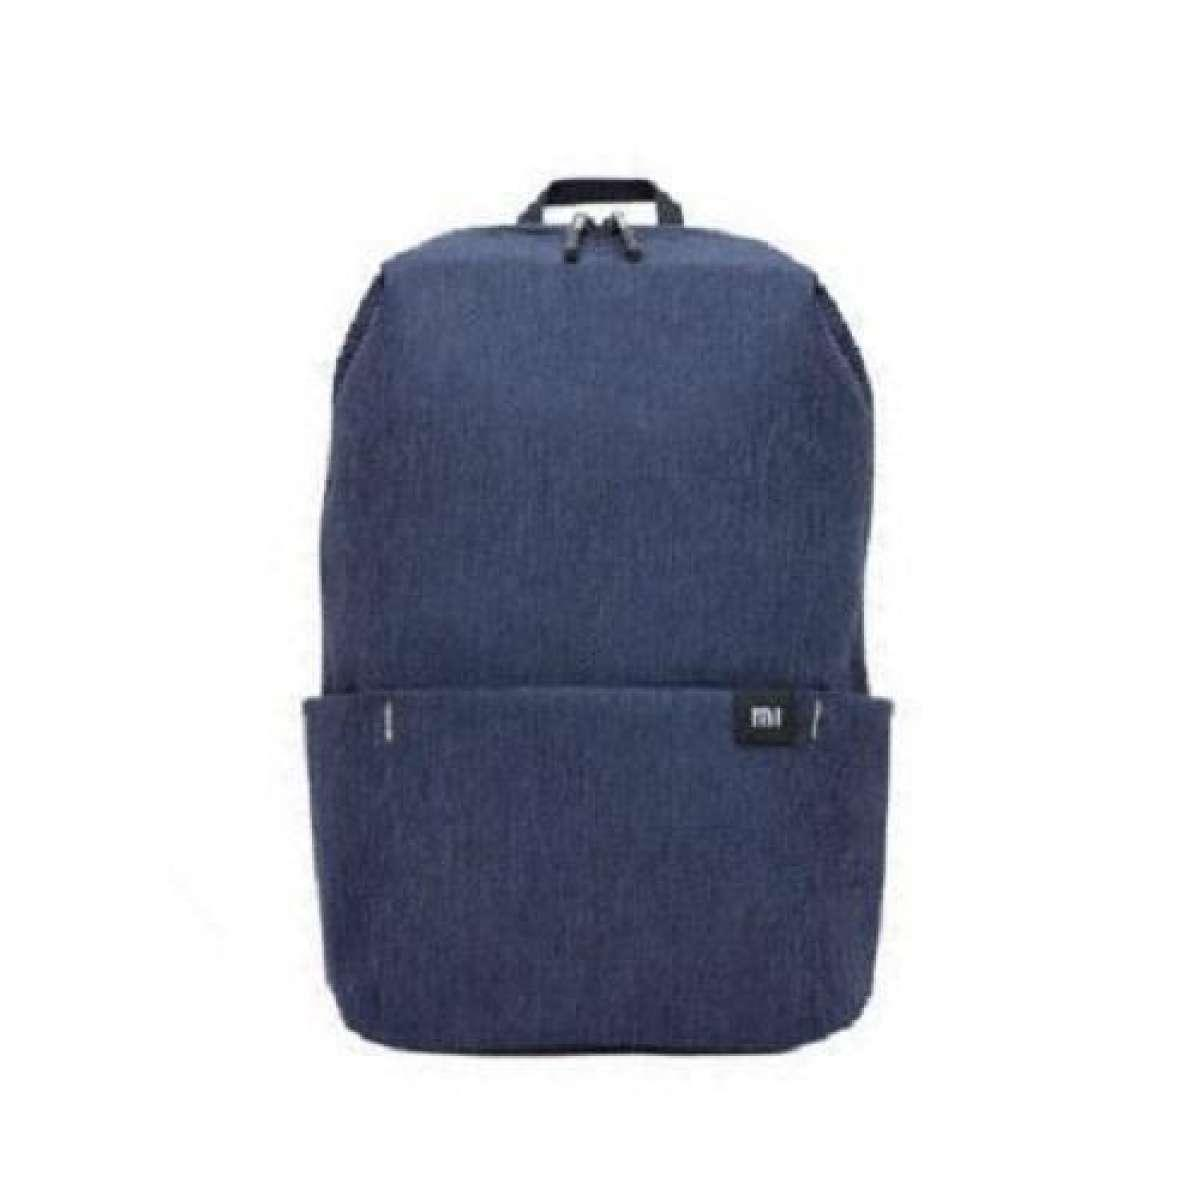 Buy Xiaomi Men Fashion backpacks at Best Prices Online in Bangladesh ... e519669aa7d85